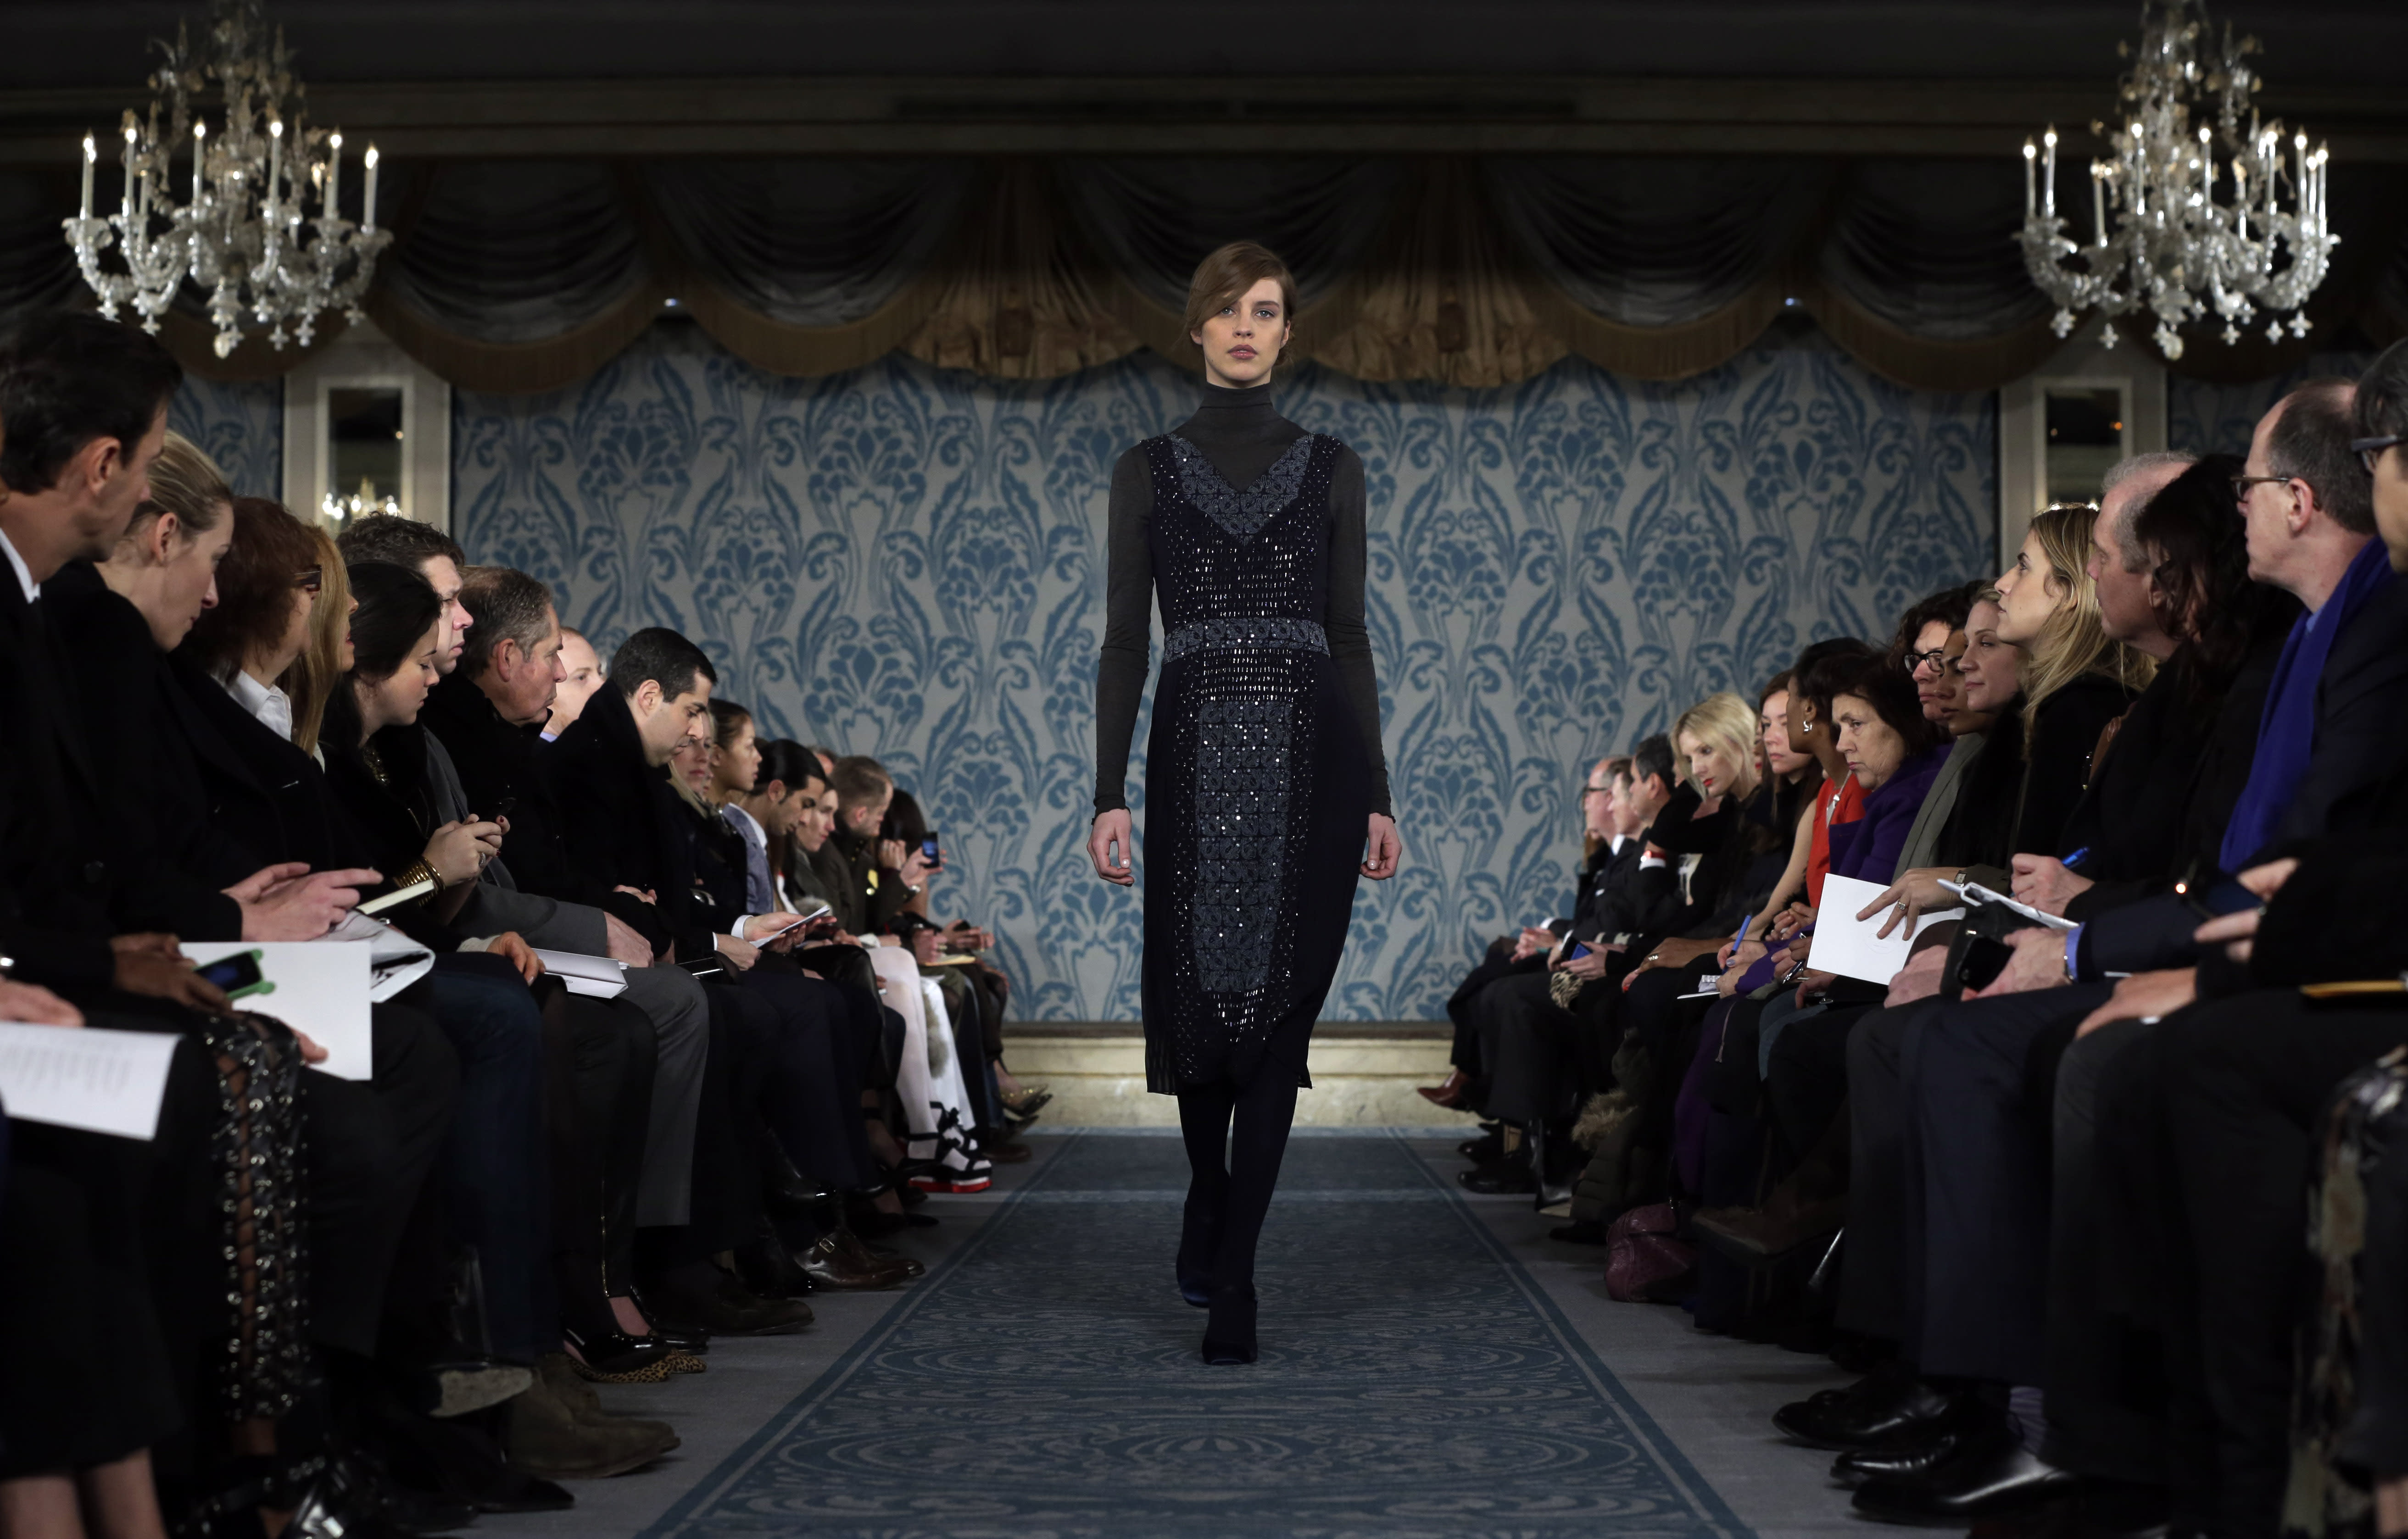 The Tory Burch Fall 2013 collection is modeled during Fashion Week in New York, Tuesday, Feb. 12, 2013. (AP Photo/Richard Drew)